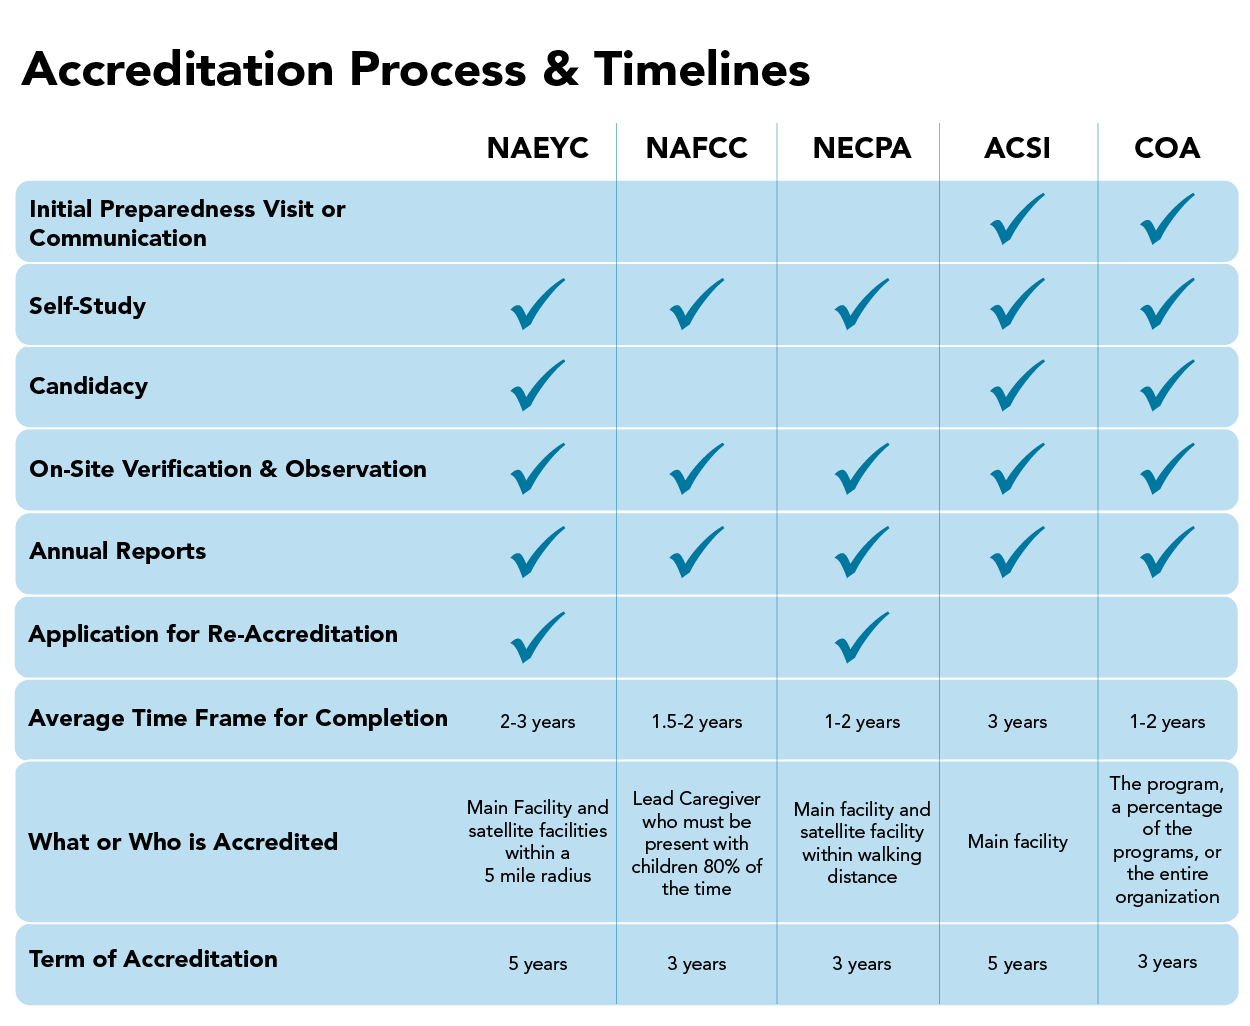 blue table with Accrediation Process & Timelines Without COGNIA information